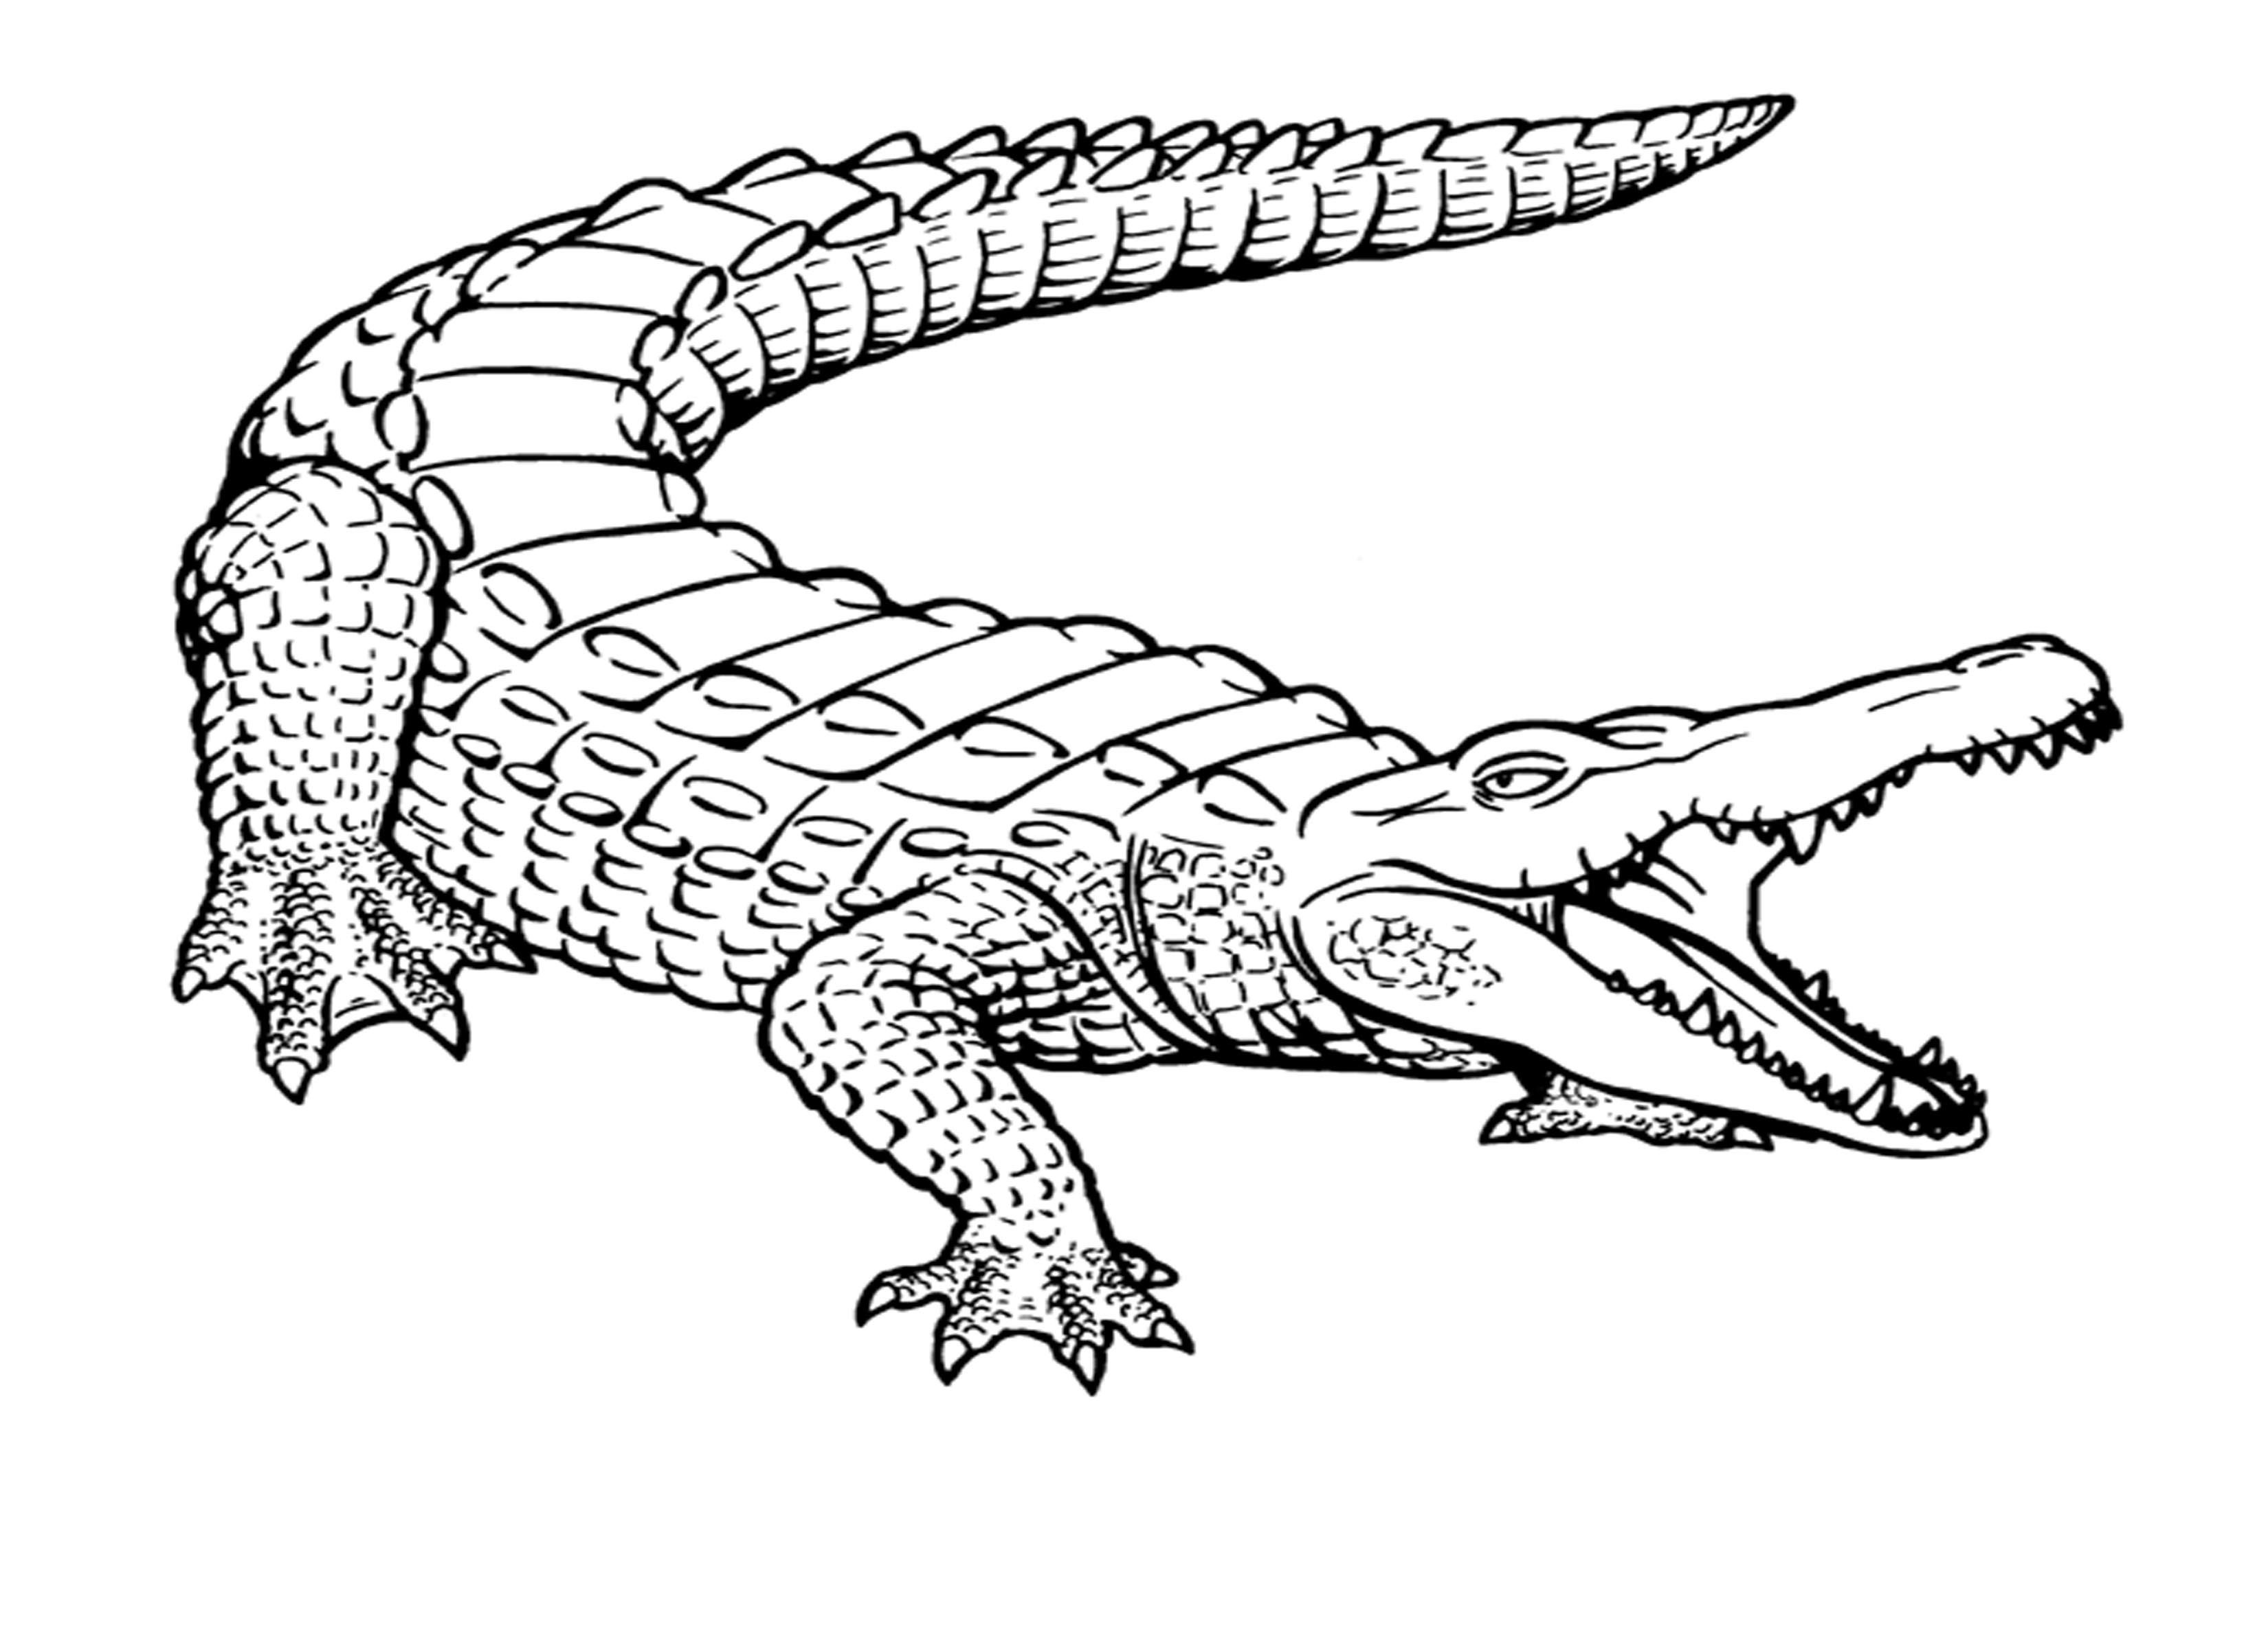 Free Printable Crocodile Coloring Pages For Kids | Pinterest ...